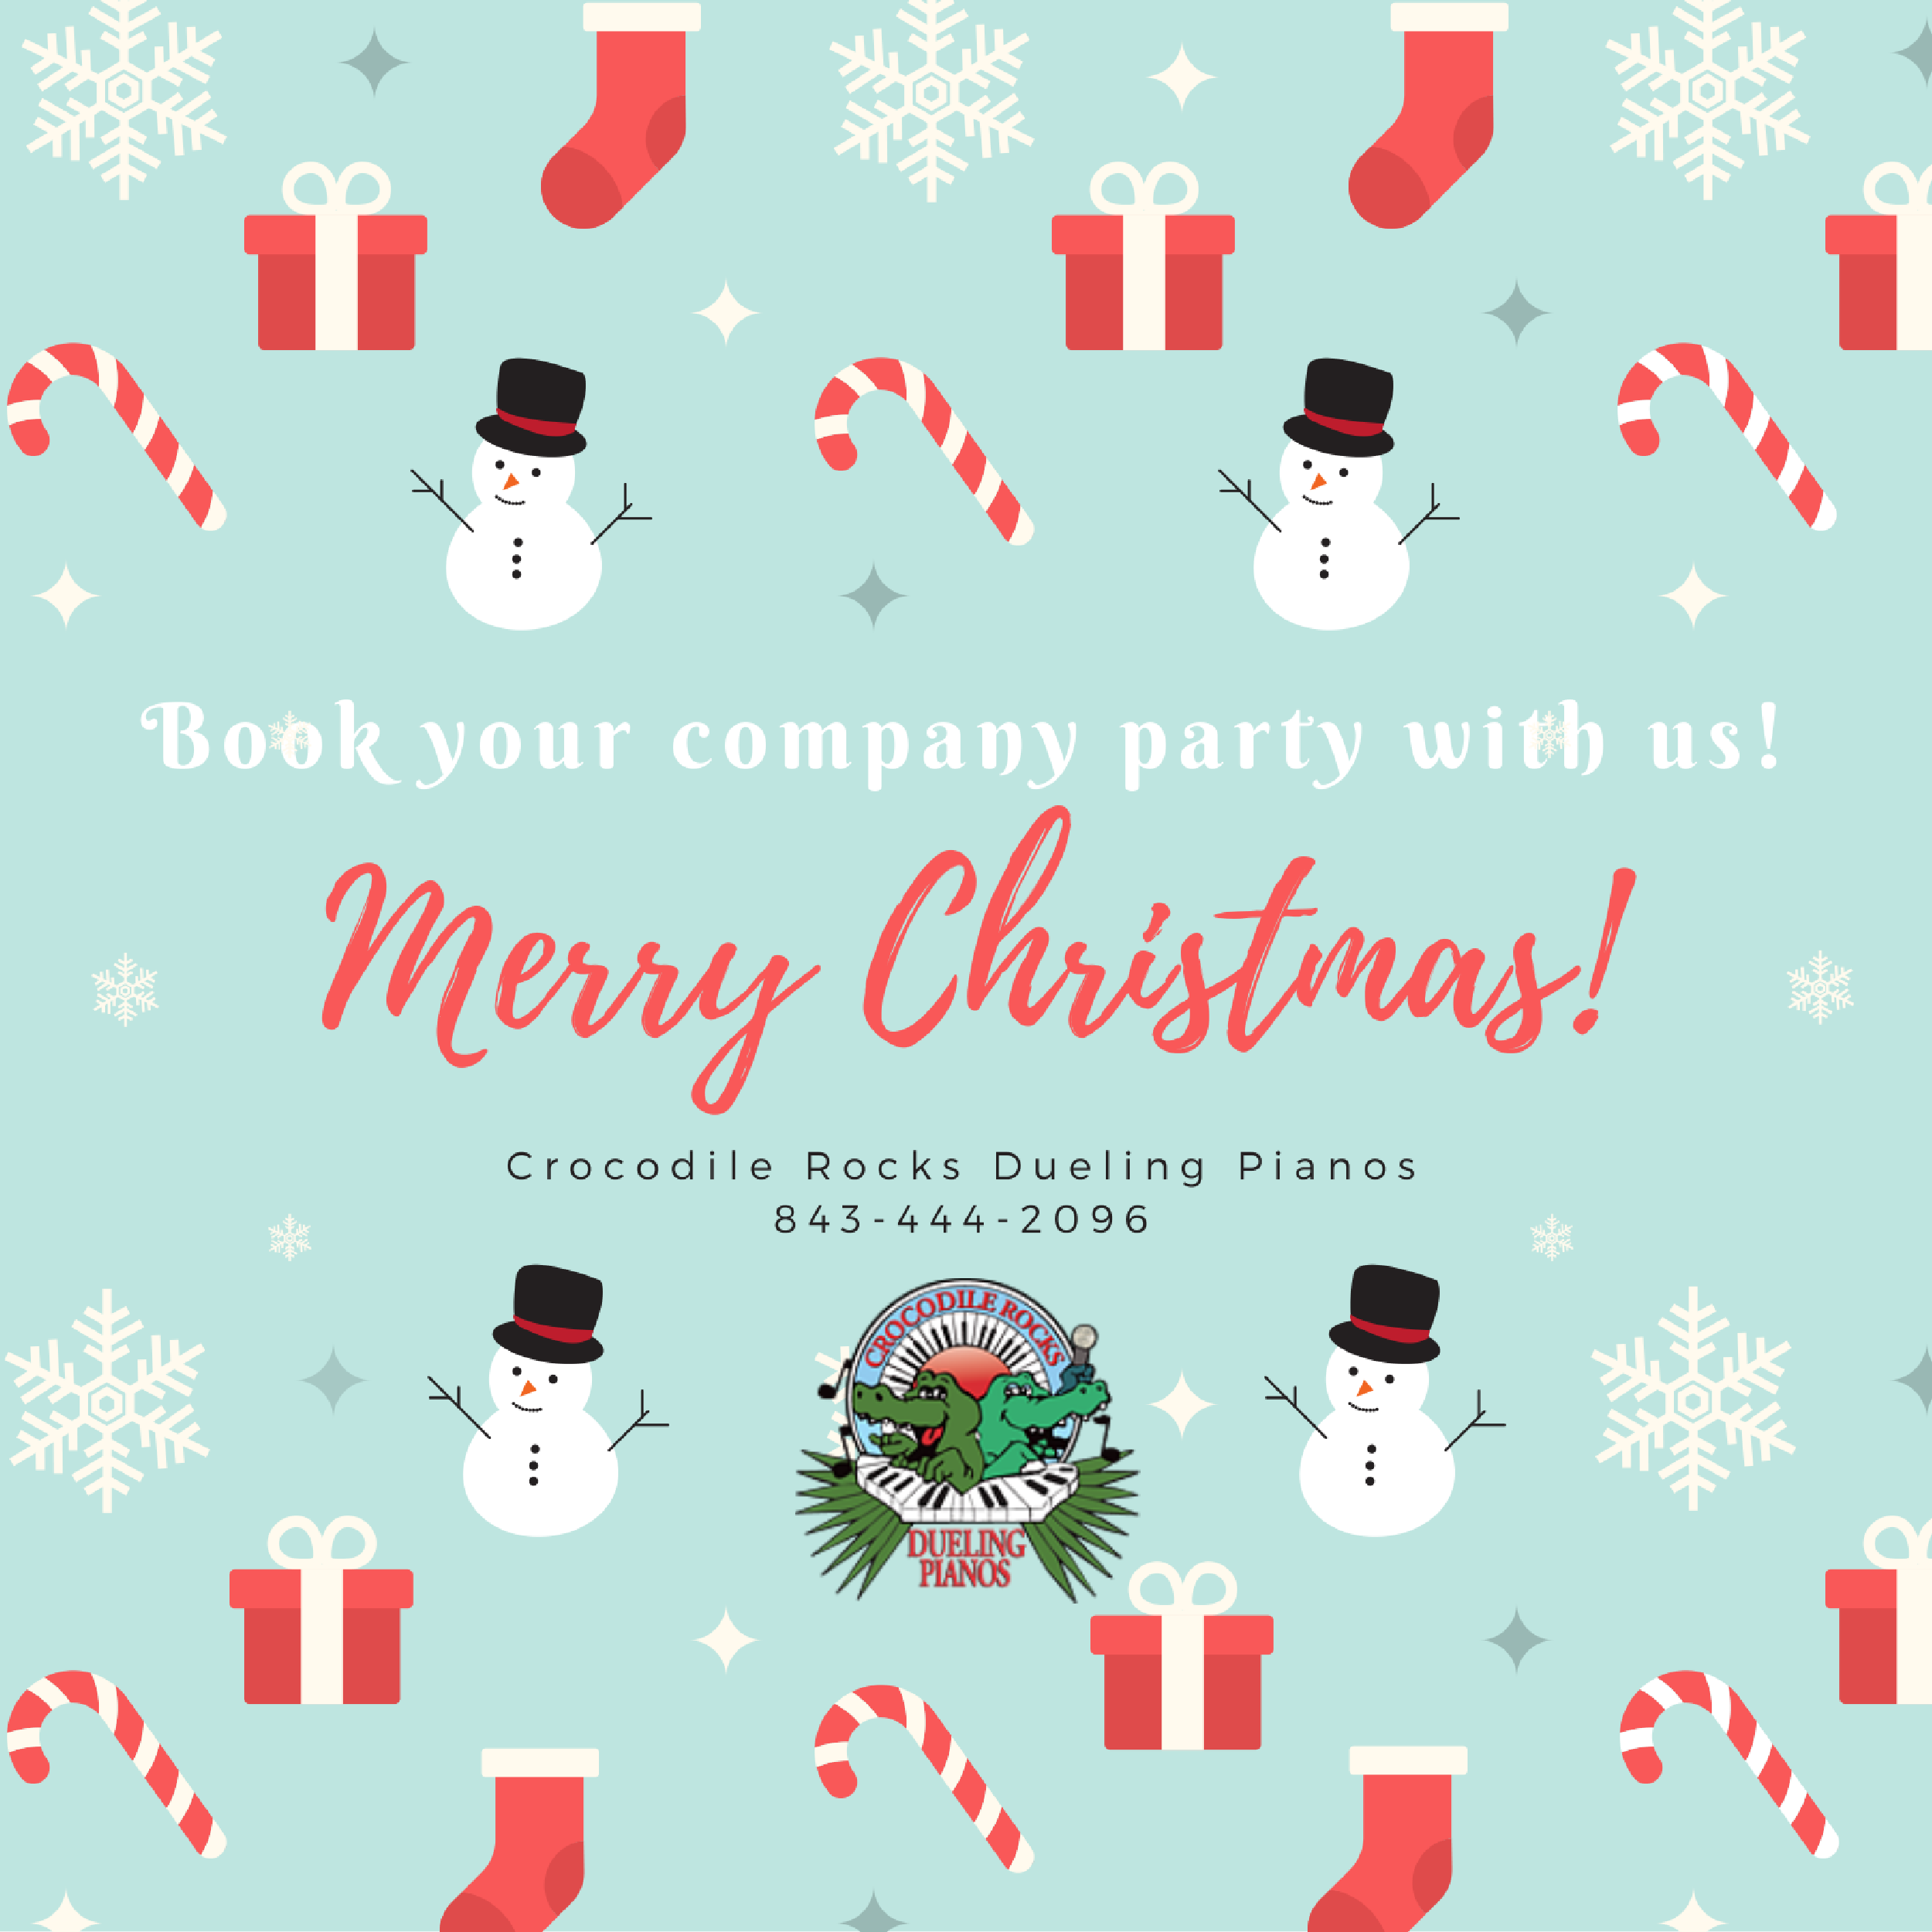 book-your-company-party-with-us-1